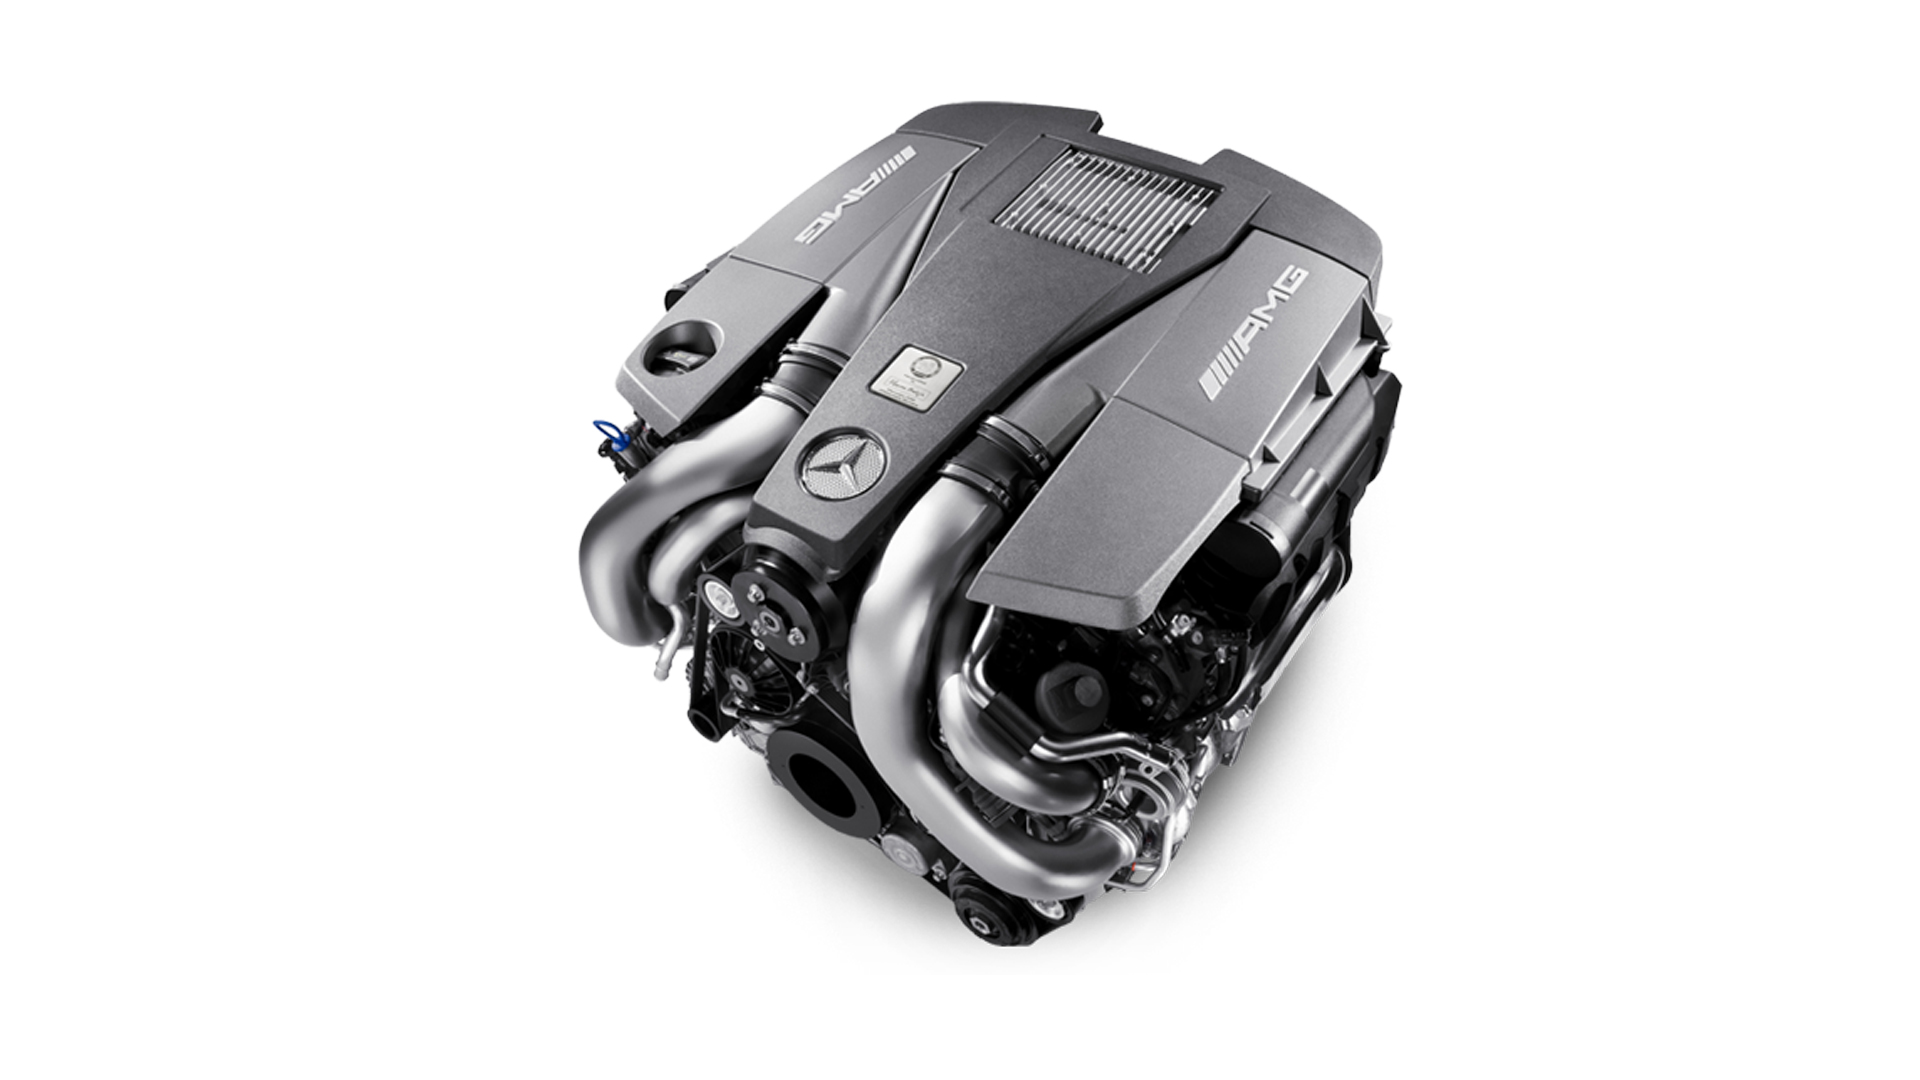 Mercedes-AMG 5.5-litre V8 biturbo engine